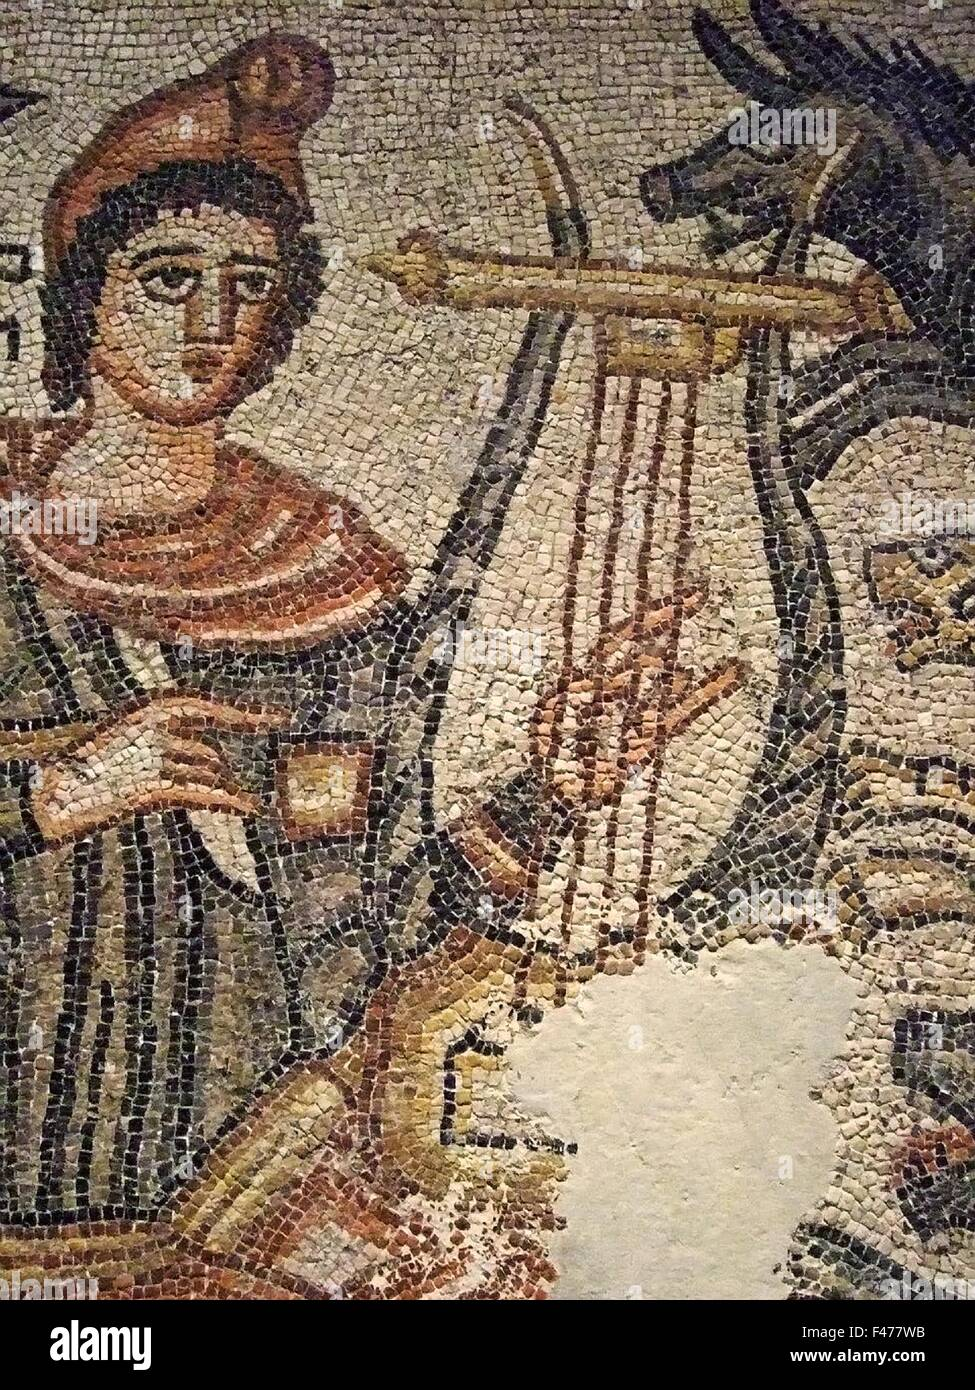 4156.ORPHEUS MOSAIC, FROM A BYZANTINE PERIOD FUNERARY CHAPEL IN JERUSALEM, detail. - Stock Image